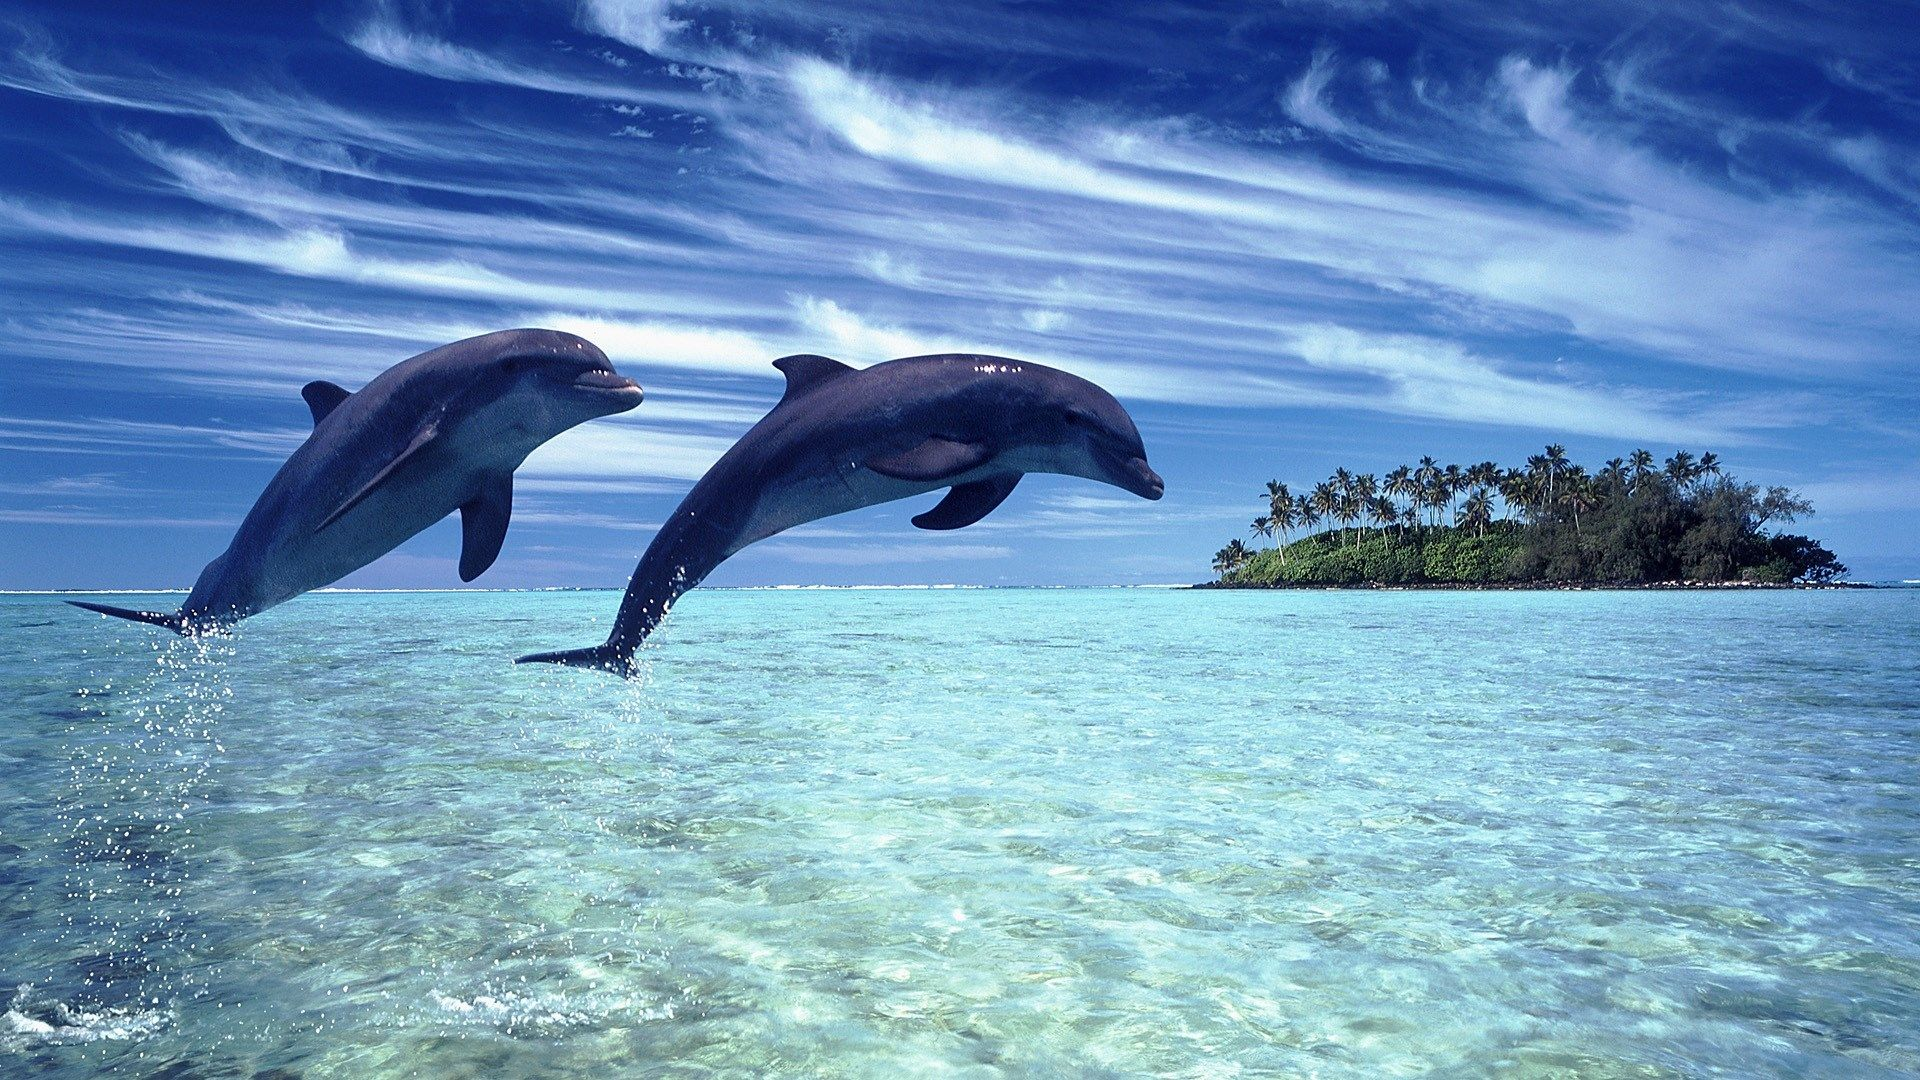 #10200, dolphin category - hd wallpaper dolphin